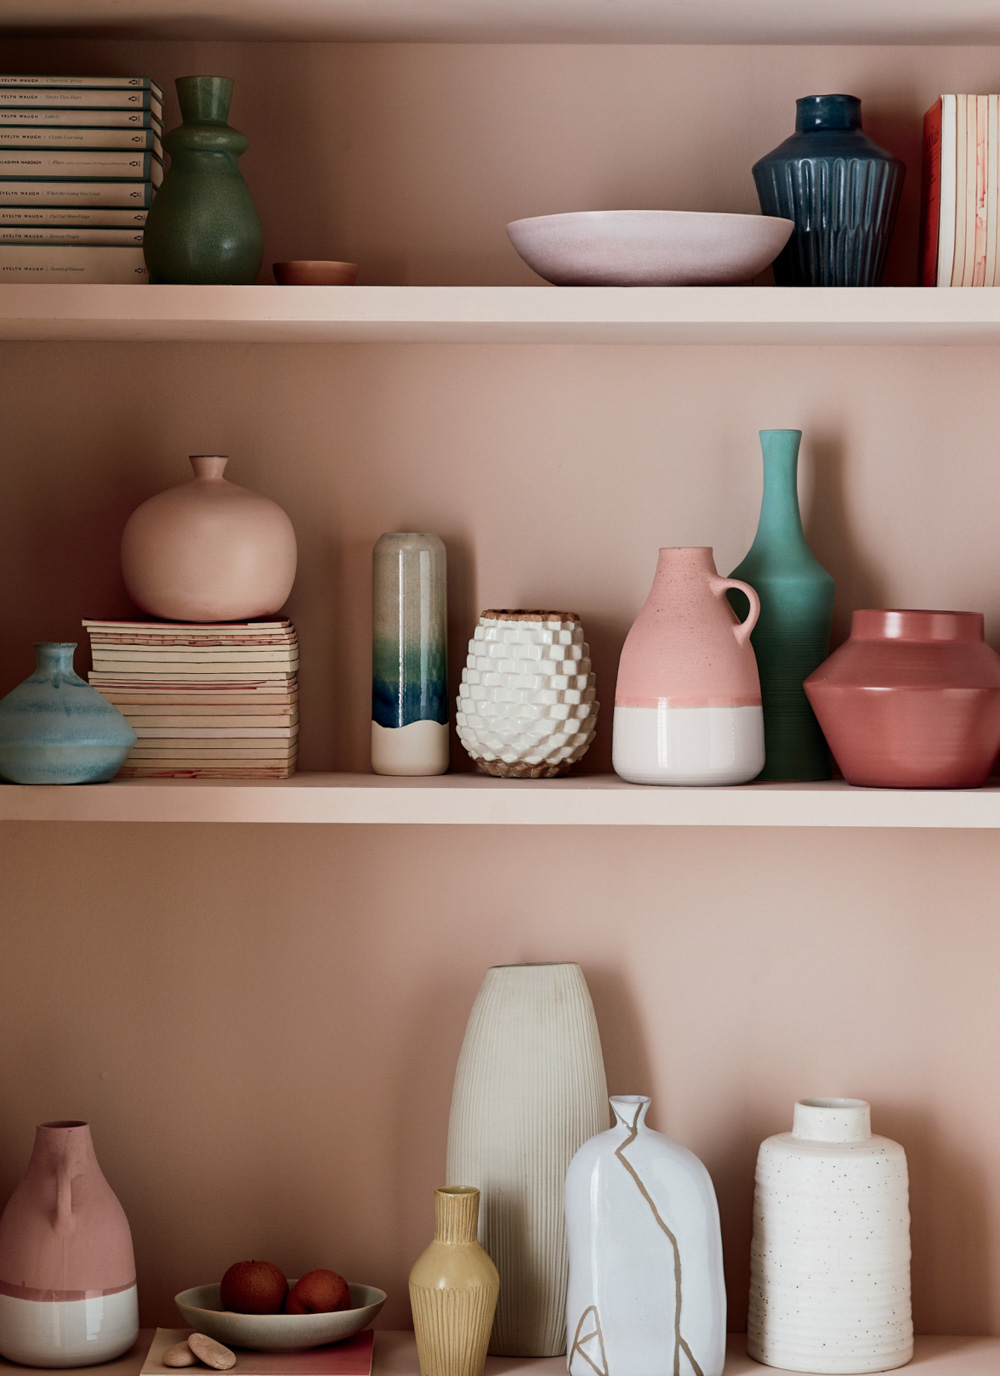 A collection of vases against a dusty pink backdrop